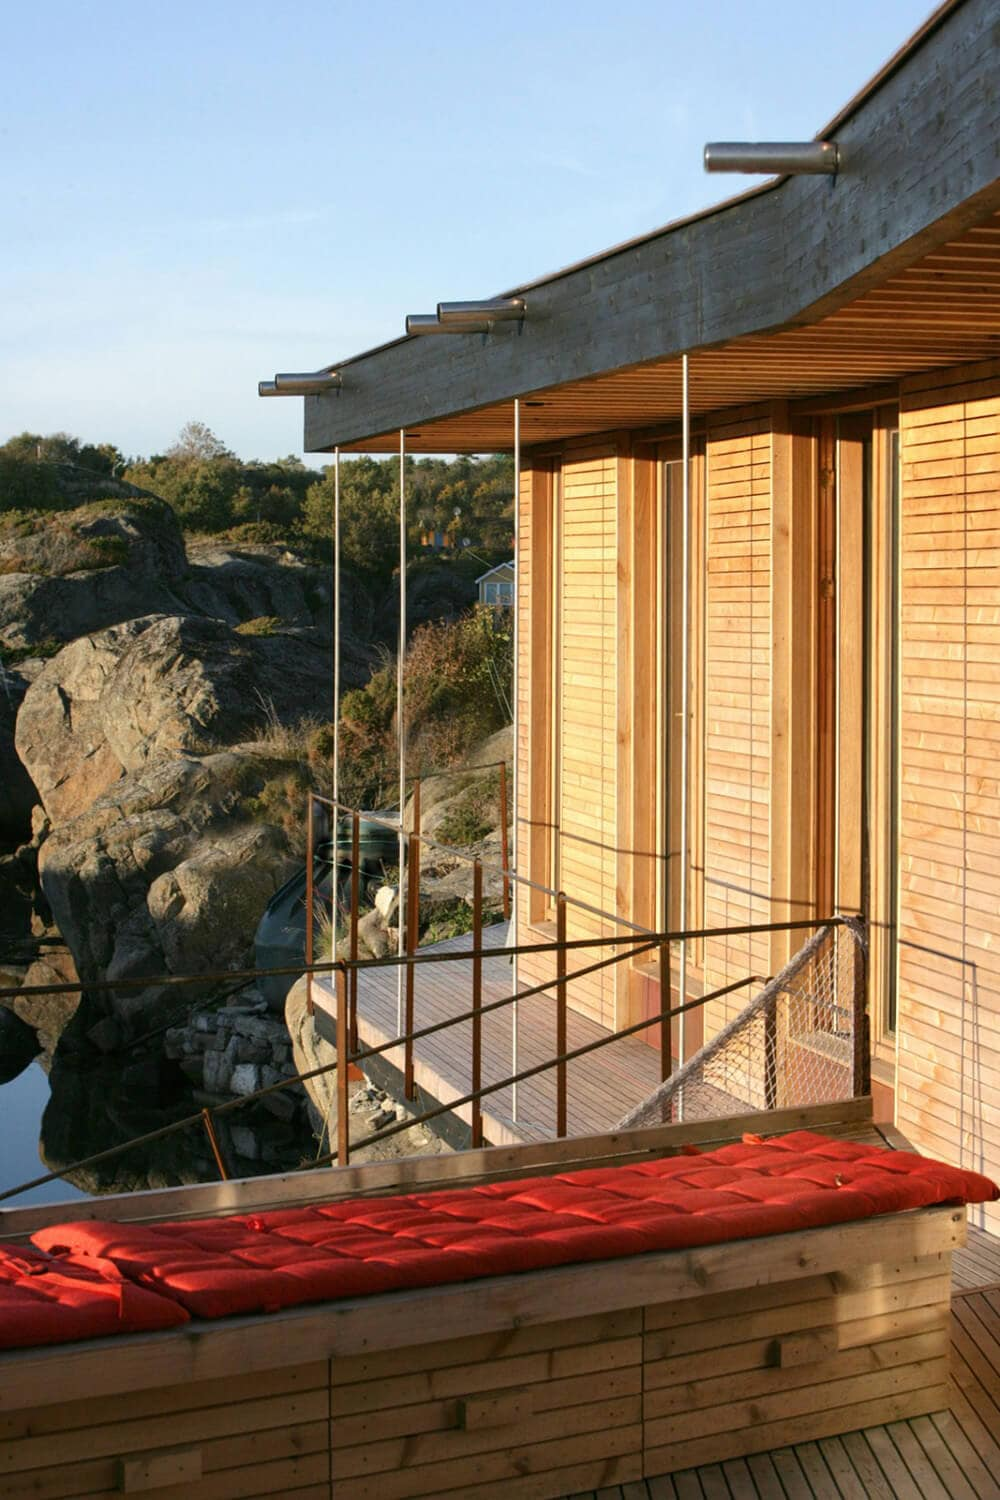 Glass-Walled House Placed in the Rocky Landscape of Norway -norway, house